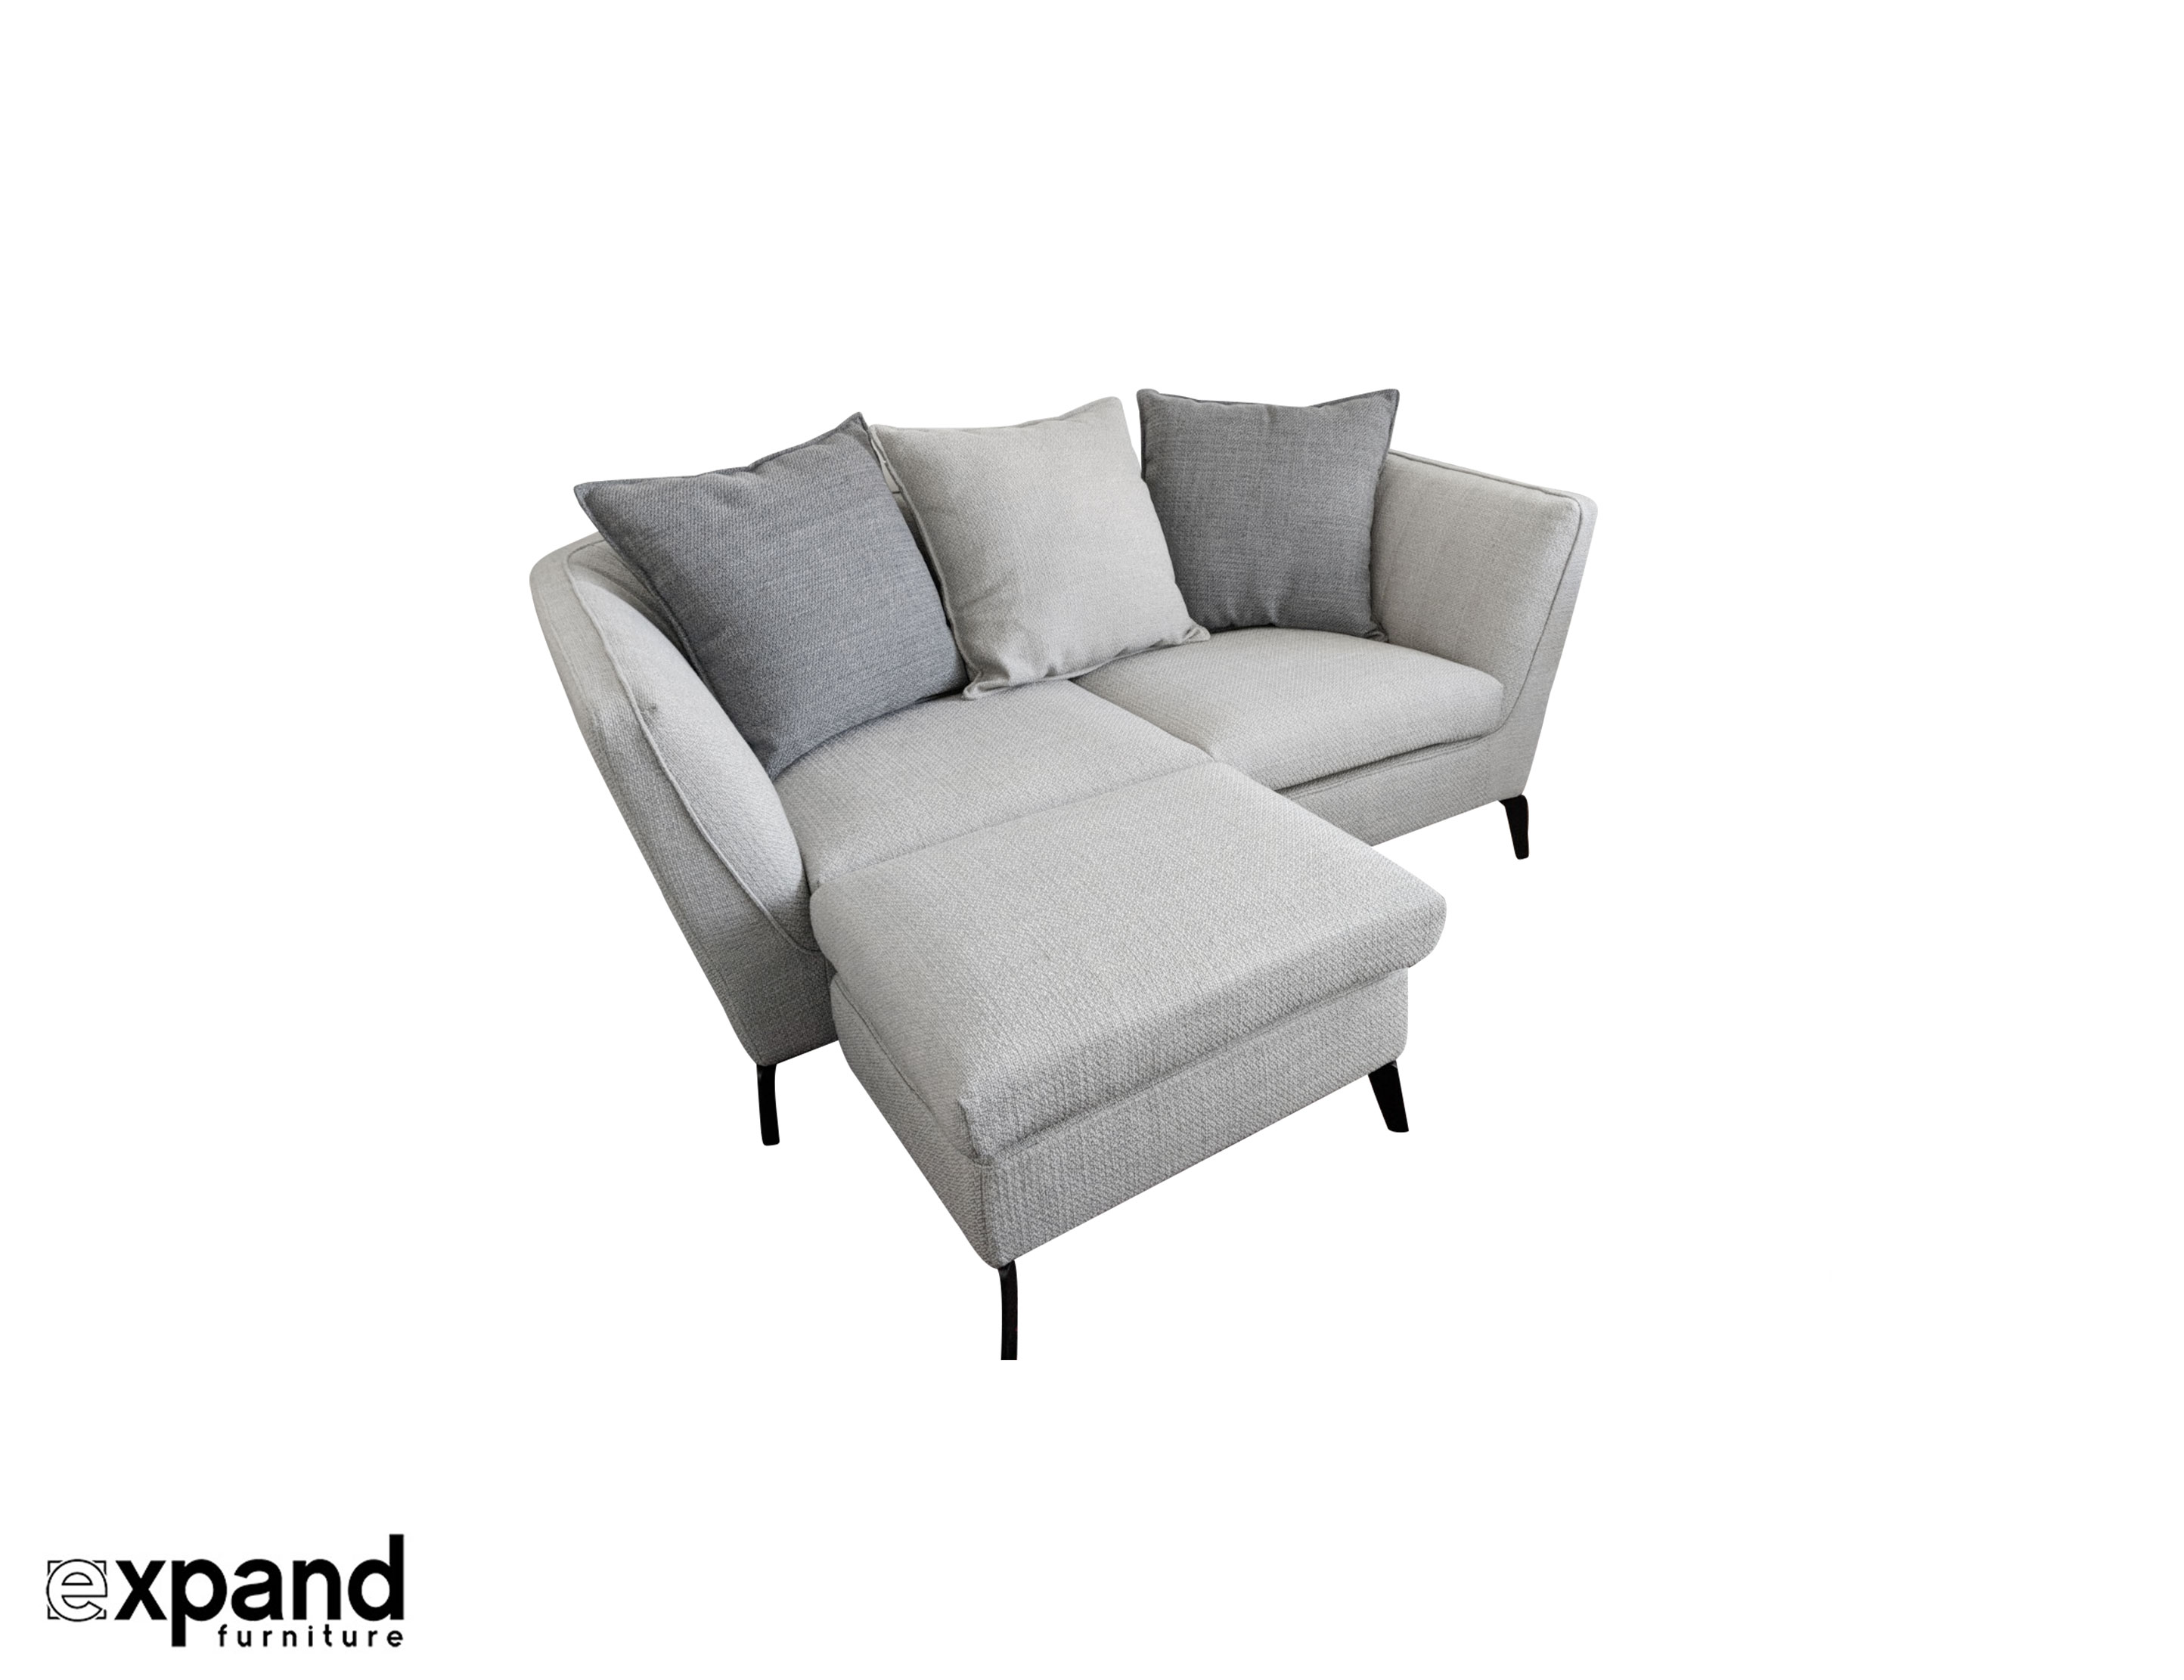 Skyline Small Apartment Sofa With Ottoman Expand Furniture